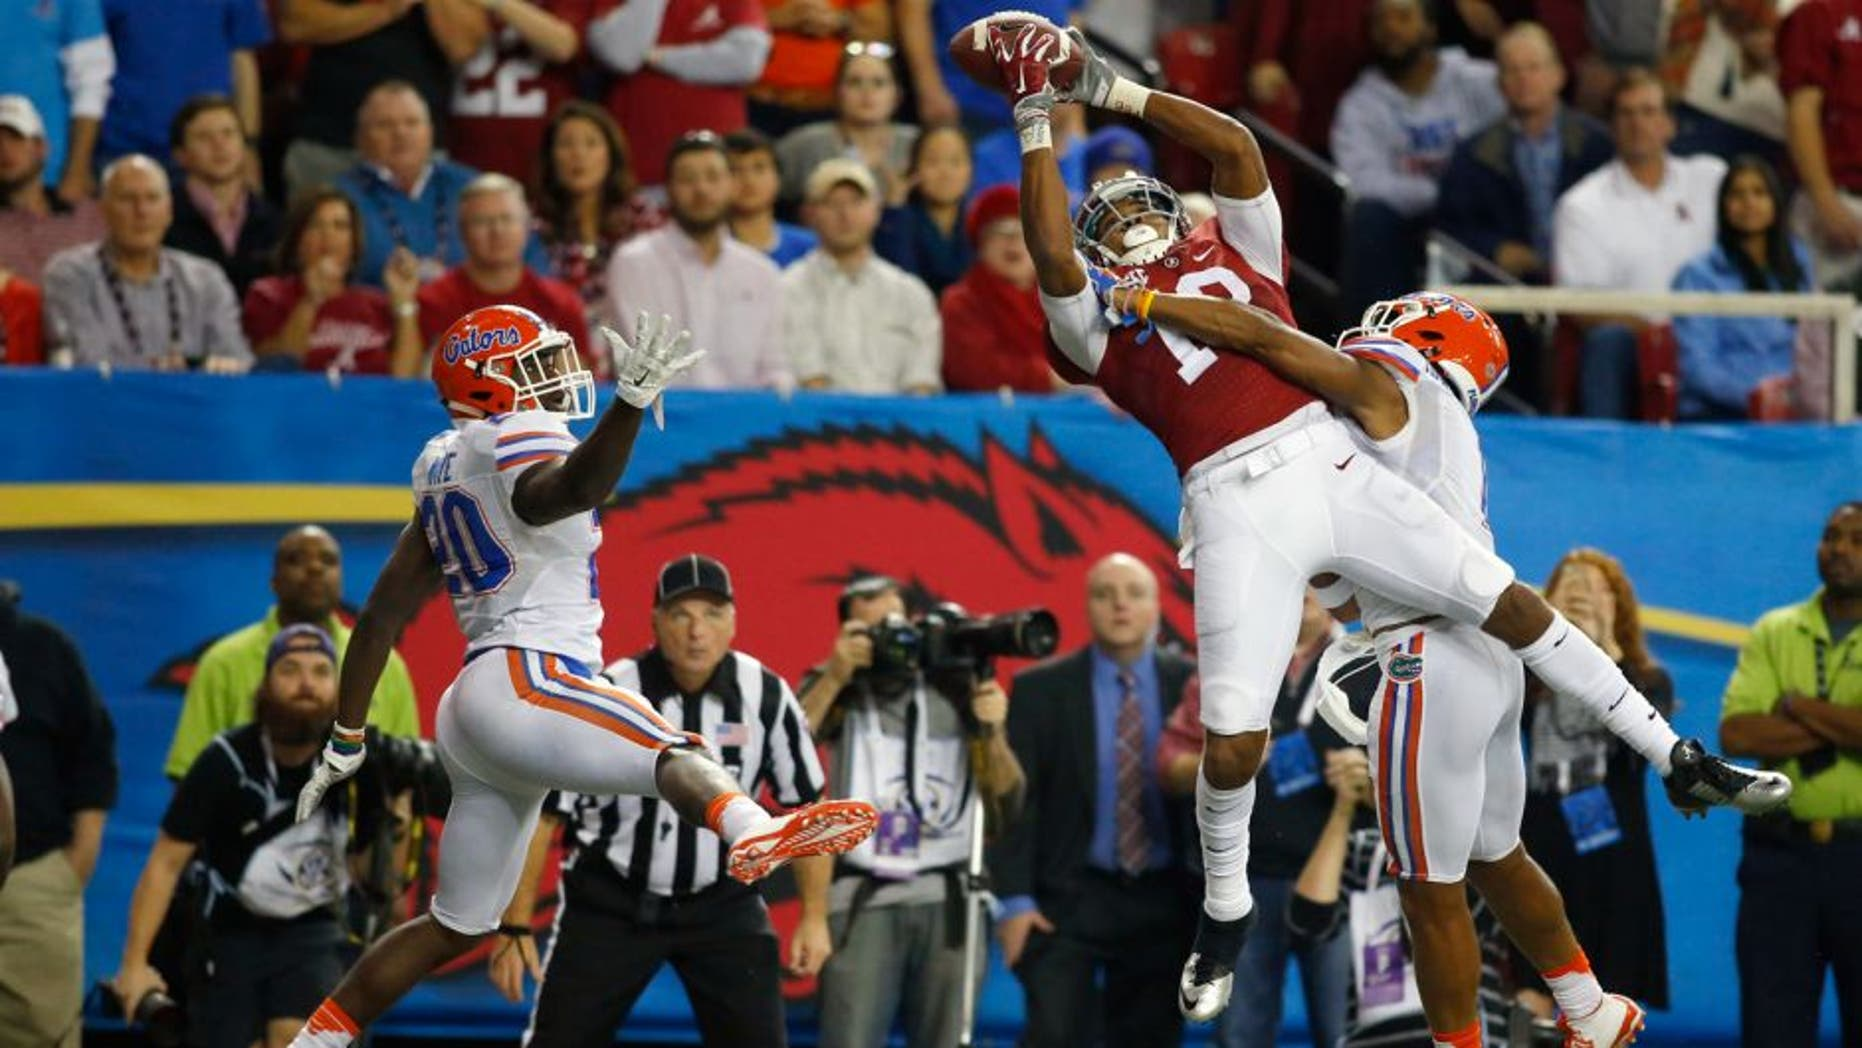 Dec 5, 2015; Atlanta, GA, USA; Alabama Crimson Tide wide receiver ArDarius Stewart (13) catches a 32 yard touchdown pass defended by Florida Gators defensive back Vernon Hargreaves III (1) and Marcus Maye (20) during the third quarter in the 2015 SEC Championship Game at the Georgia Dome. Mandatory Credit: Brett Davis-USA TODAY Sports